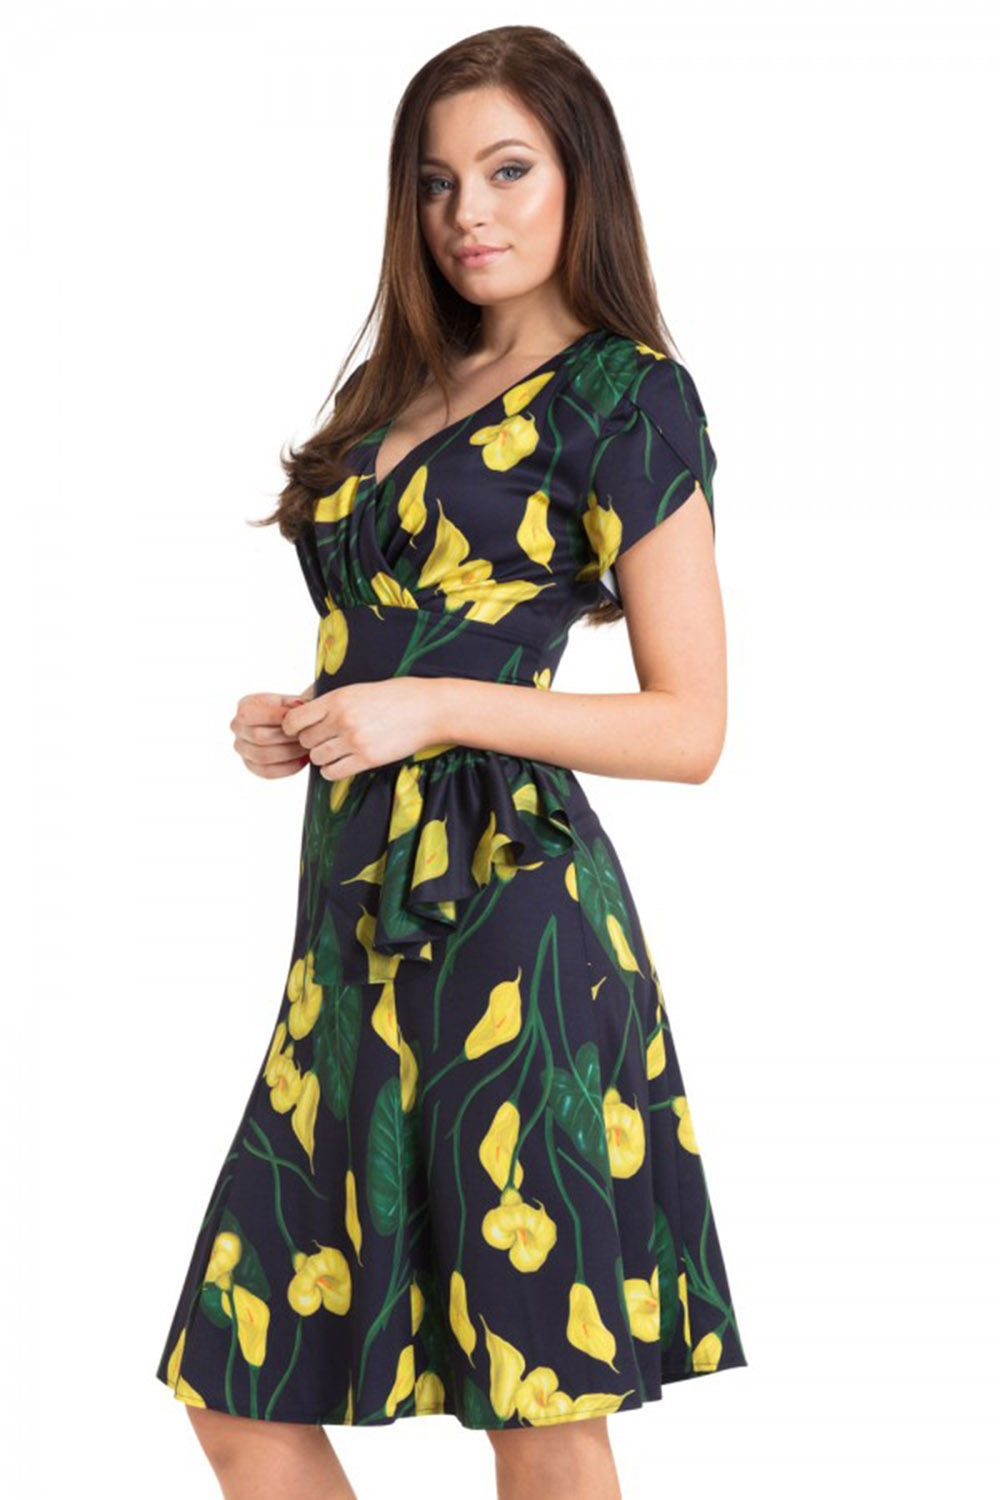 ca0a4a3d381 Voodoo Vixen Floral Calla Lily Summer Style Dress - Bettie Vintage